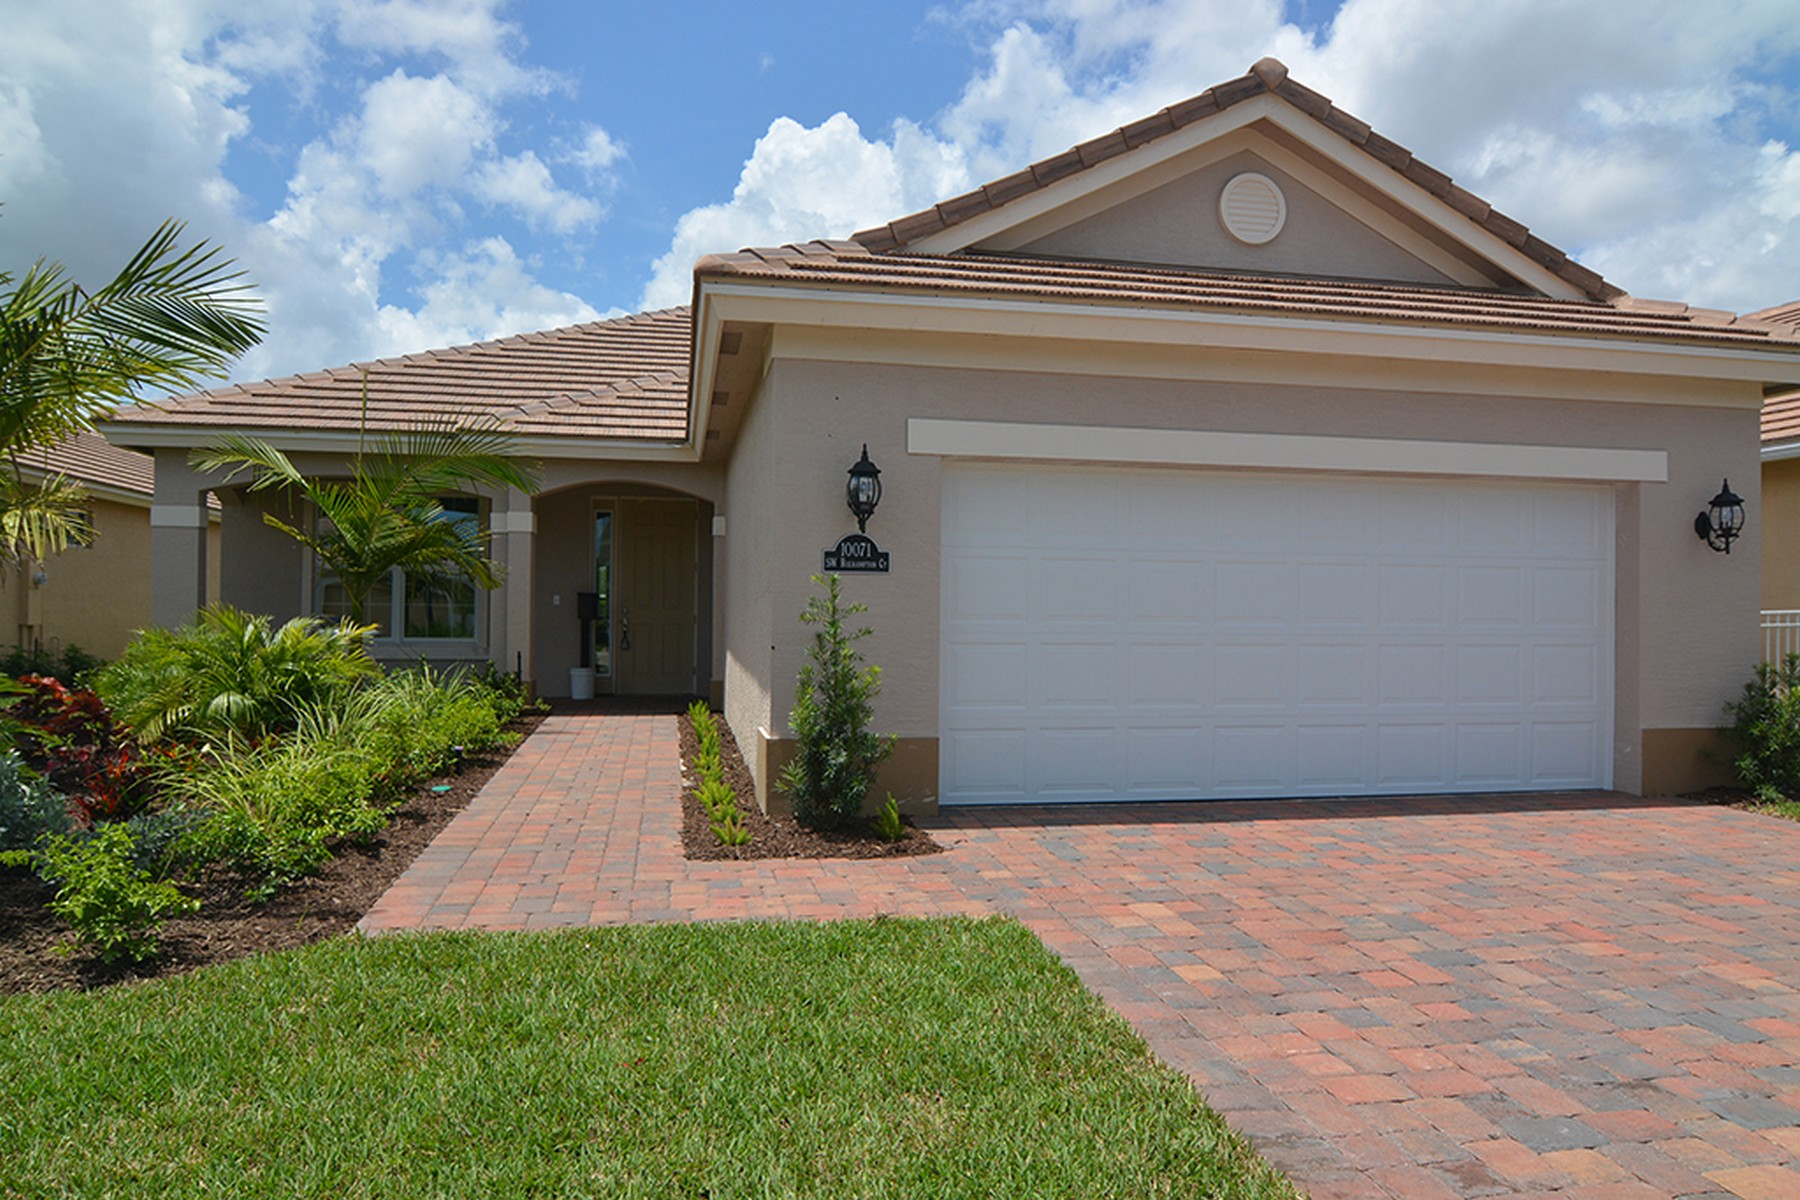 Maison unifamiliale pour l Vente à Room for a Pool! 10071 Roehampton Court SW Port St. Lucie, Florida, 34987 États-Unis